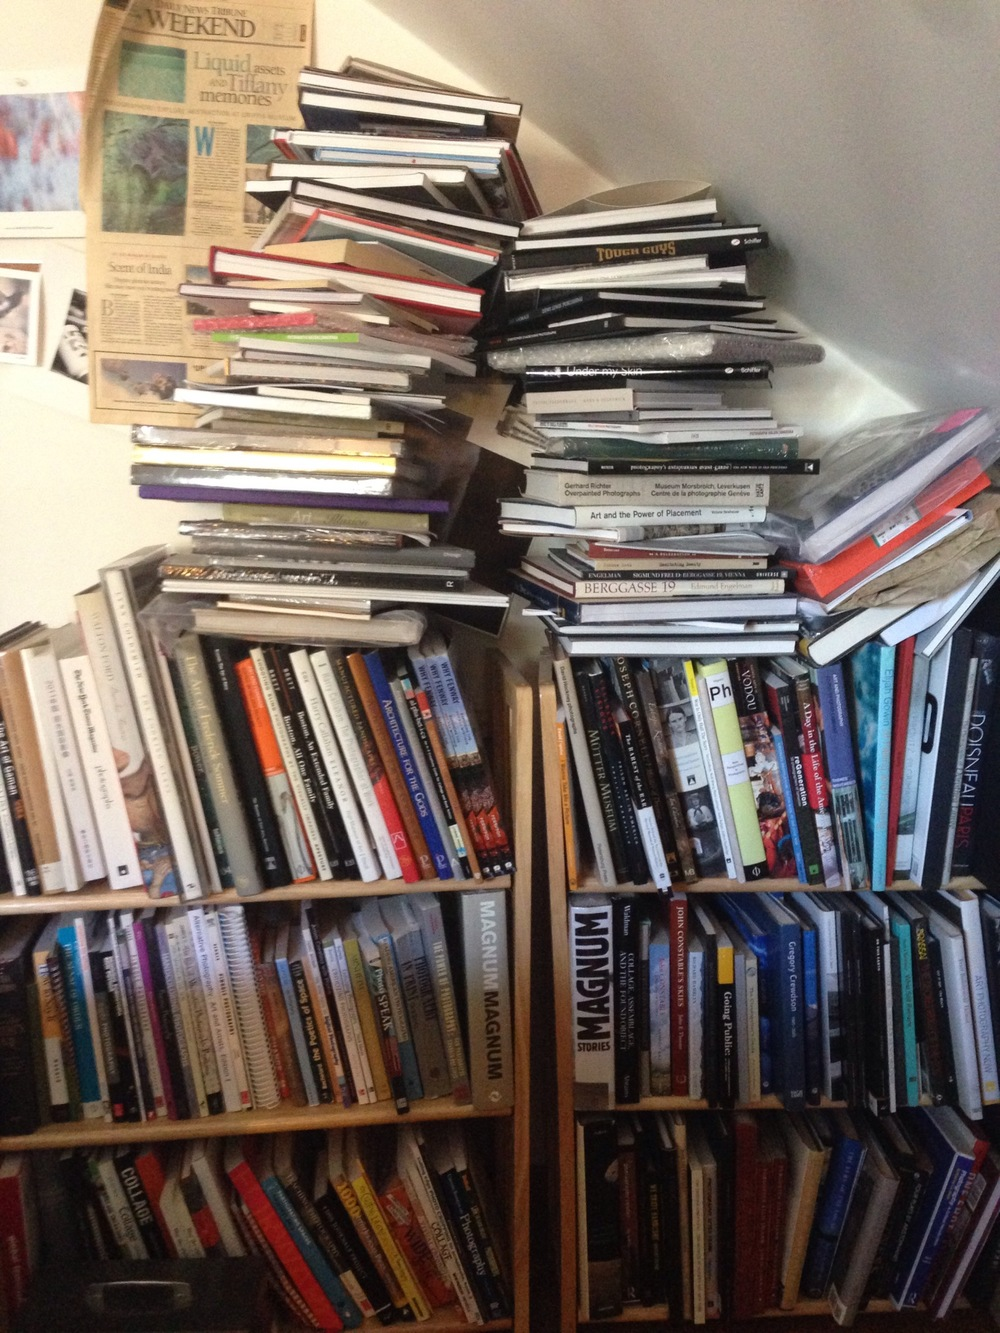 Paula Tognarelli's towering heap of books.